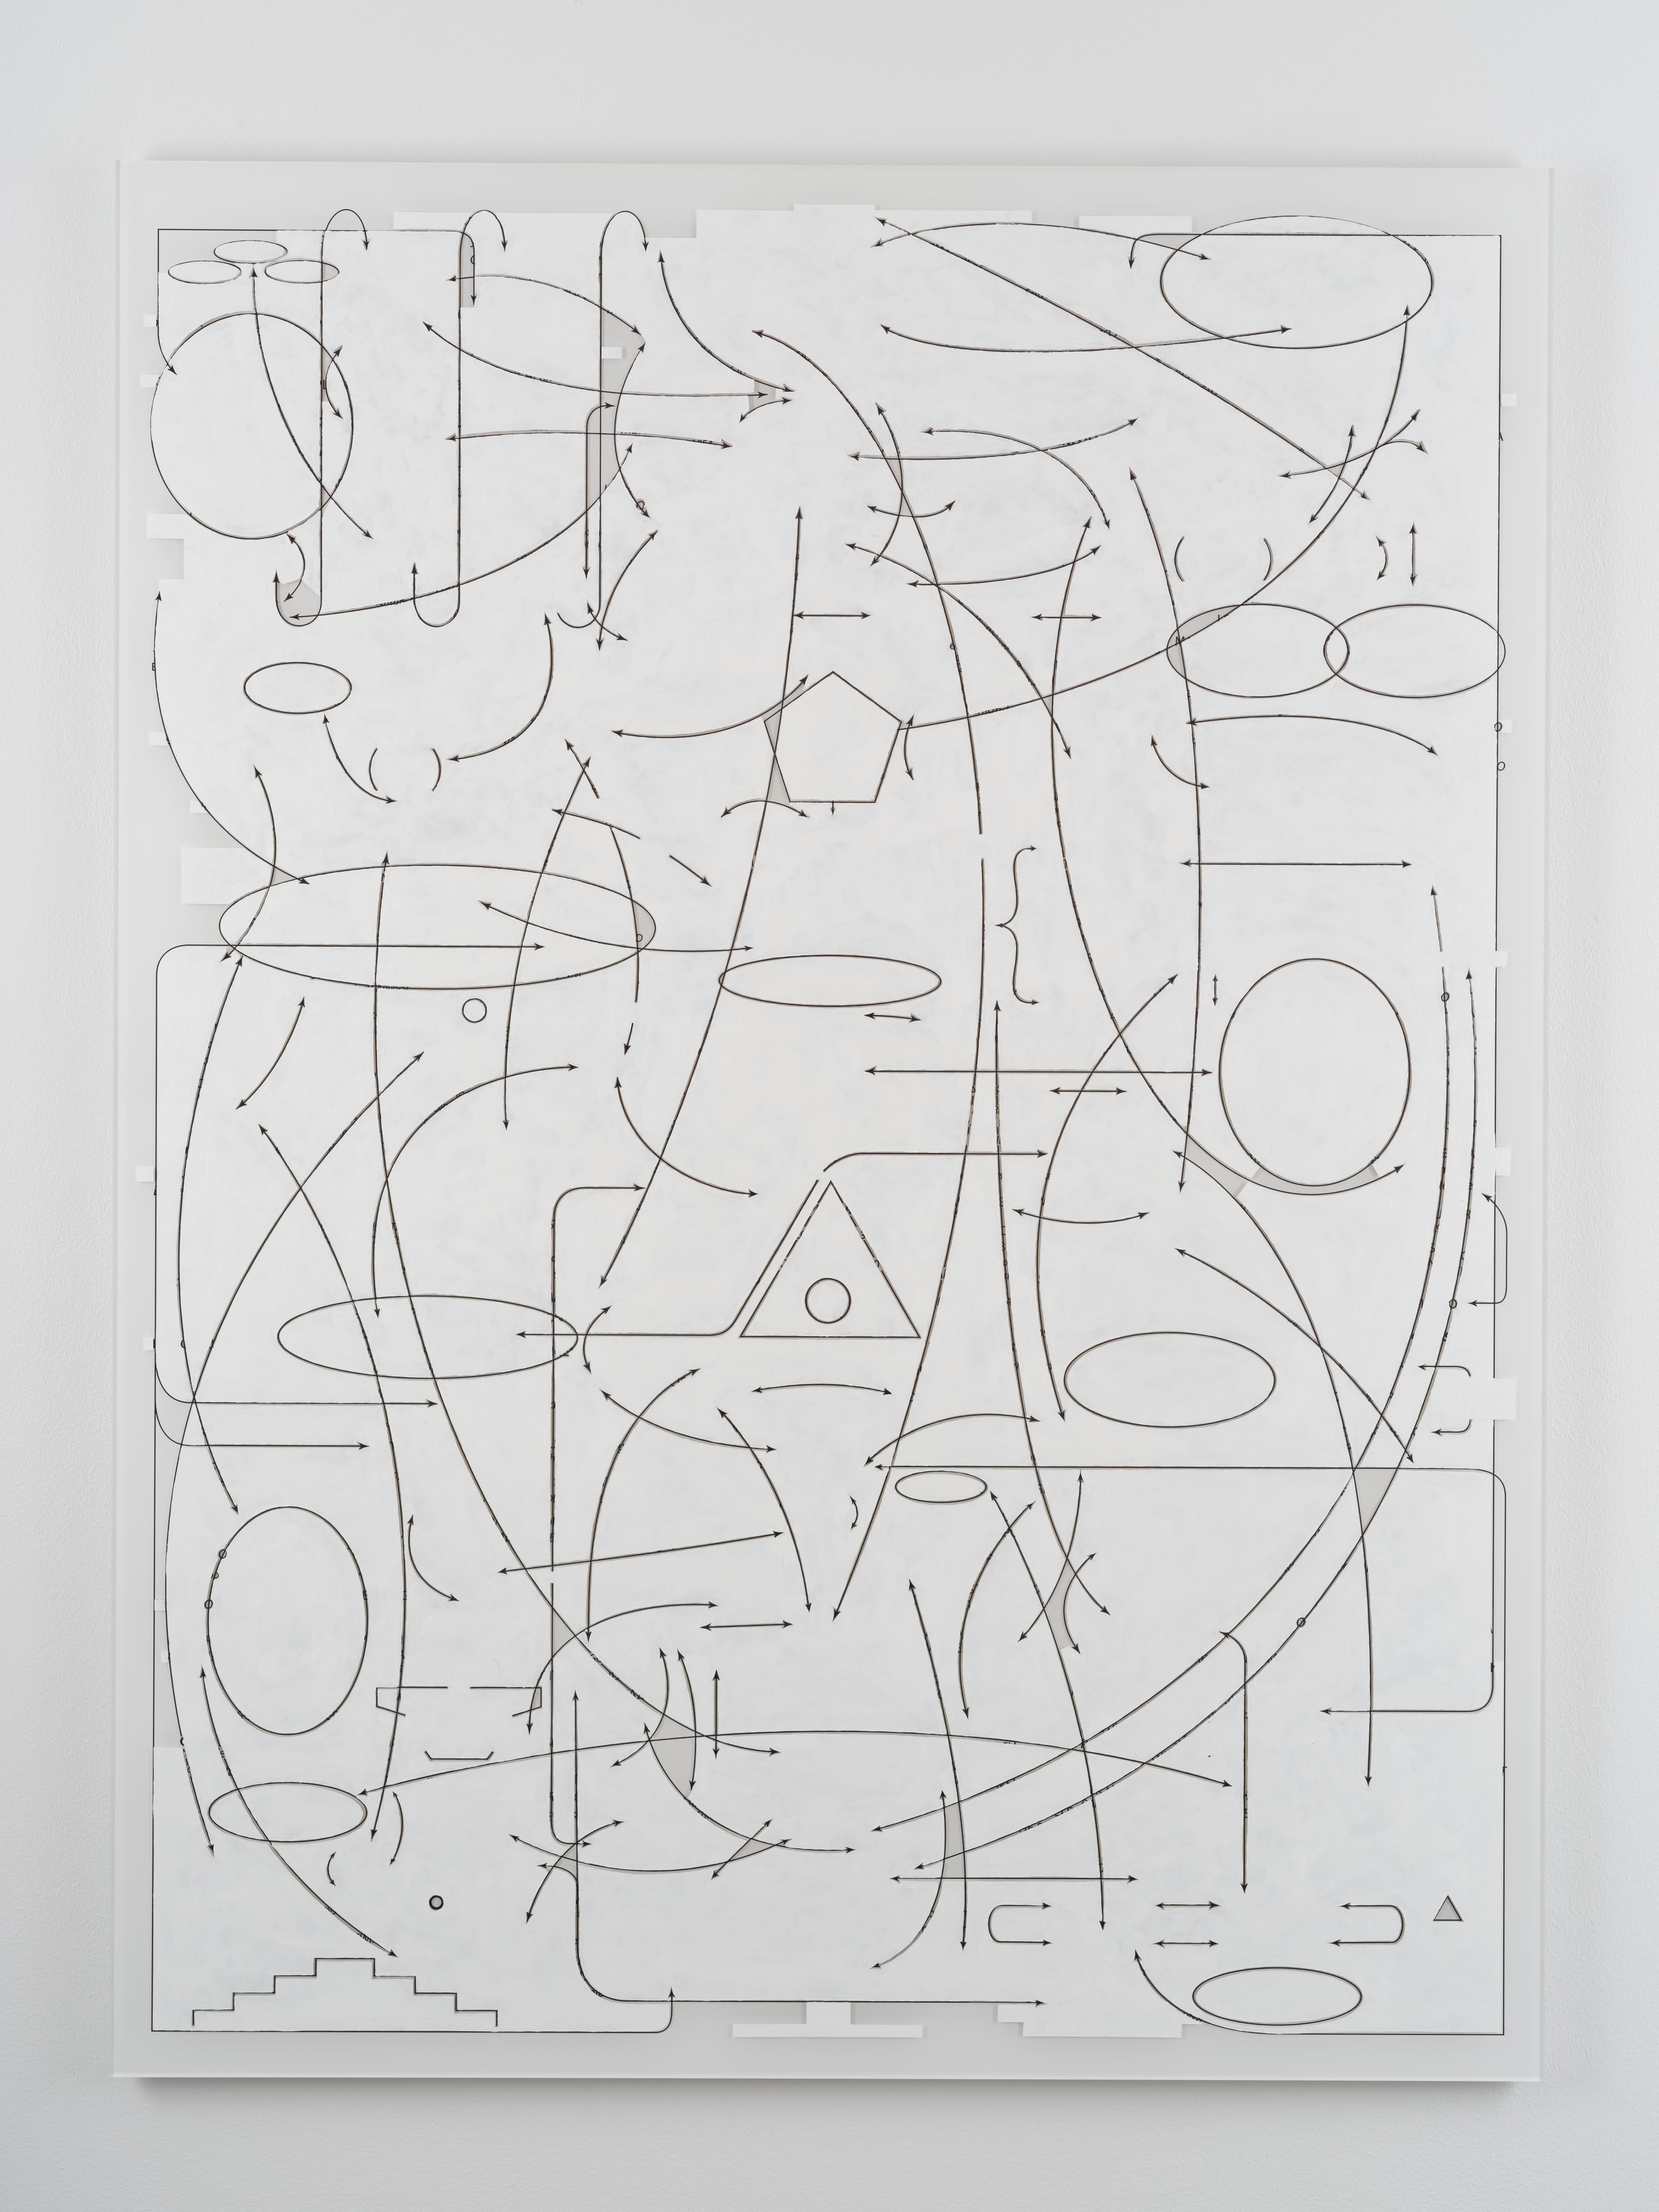 Clay Ketter, Conspiracy Transcended, 2019, Oil paint on Diasec mounted photo, 160 x 120 cm